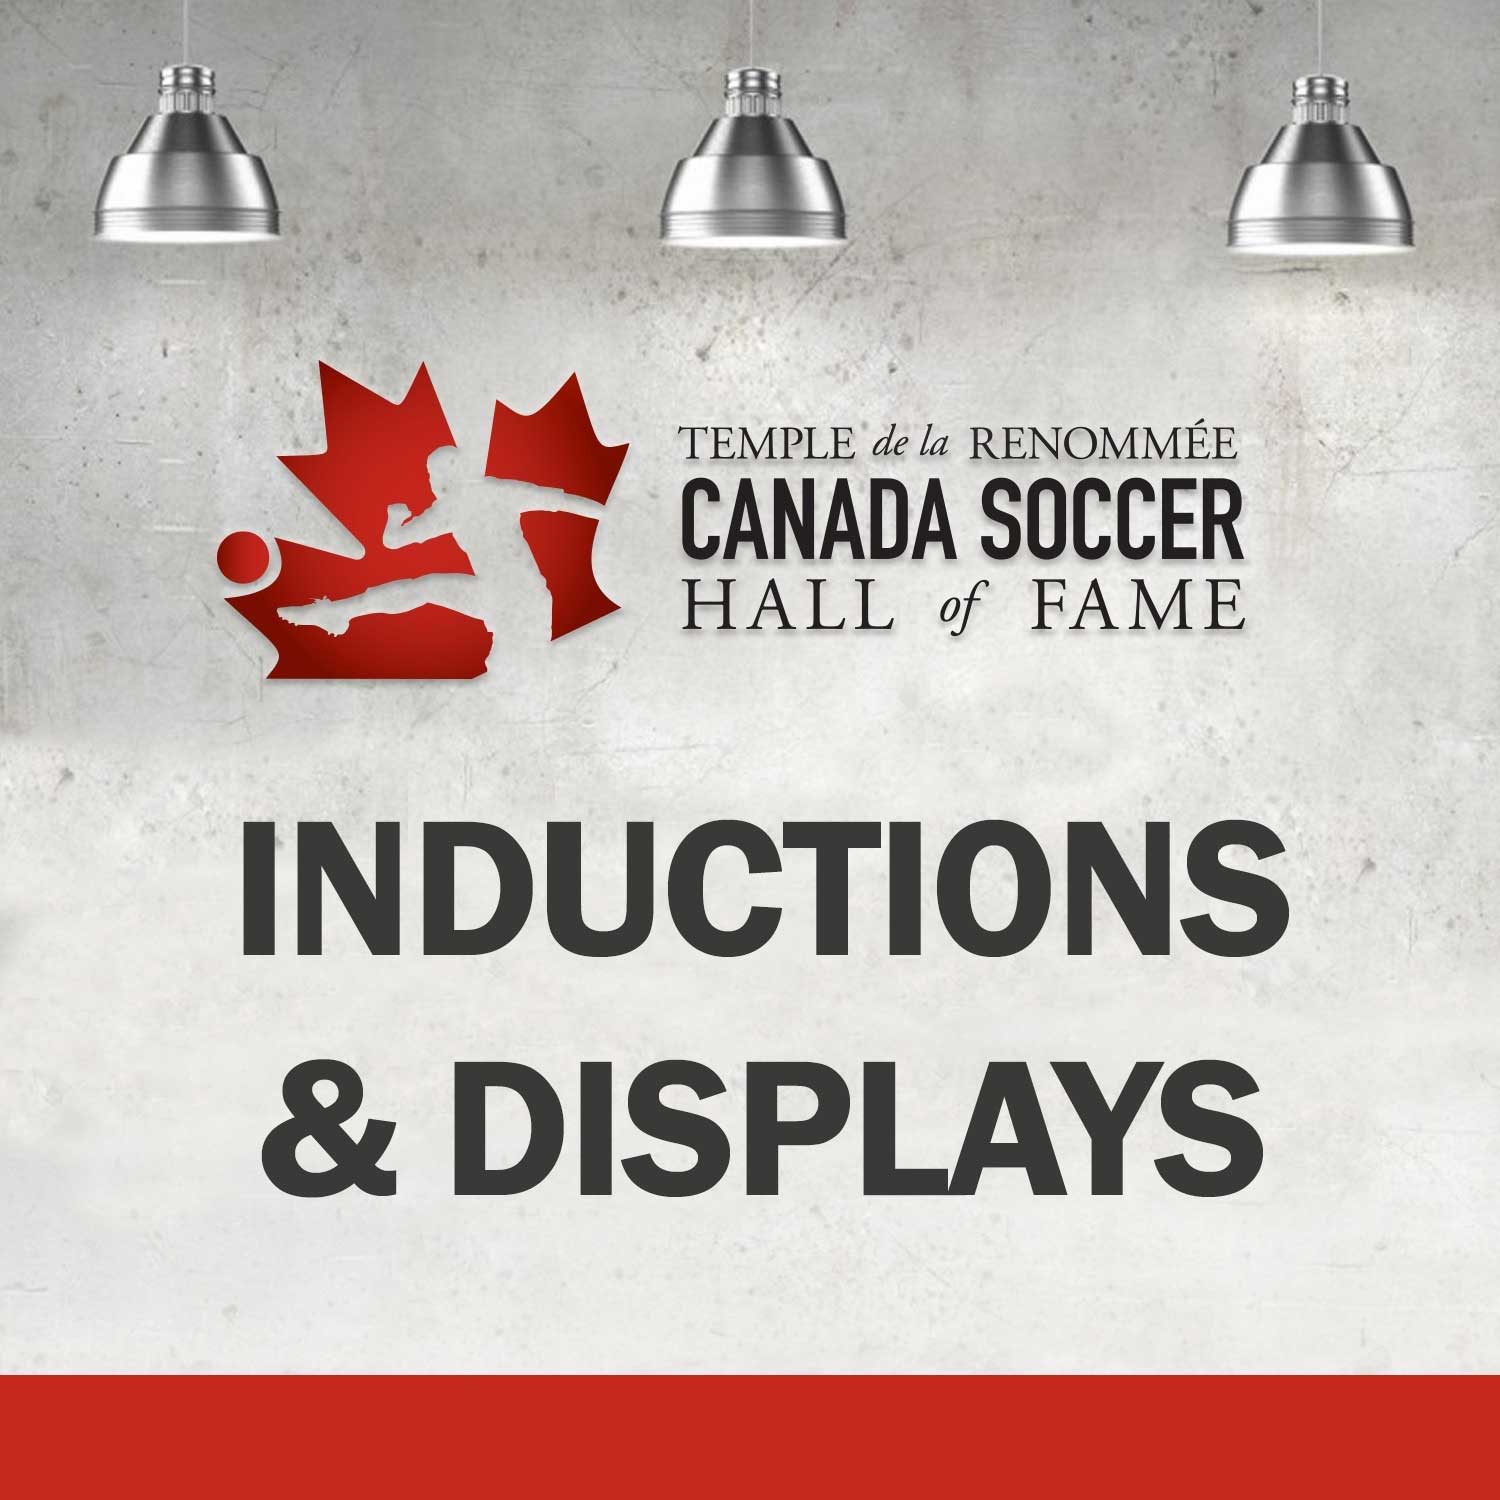 Inductions & Displays